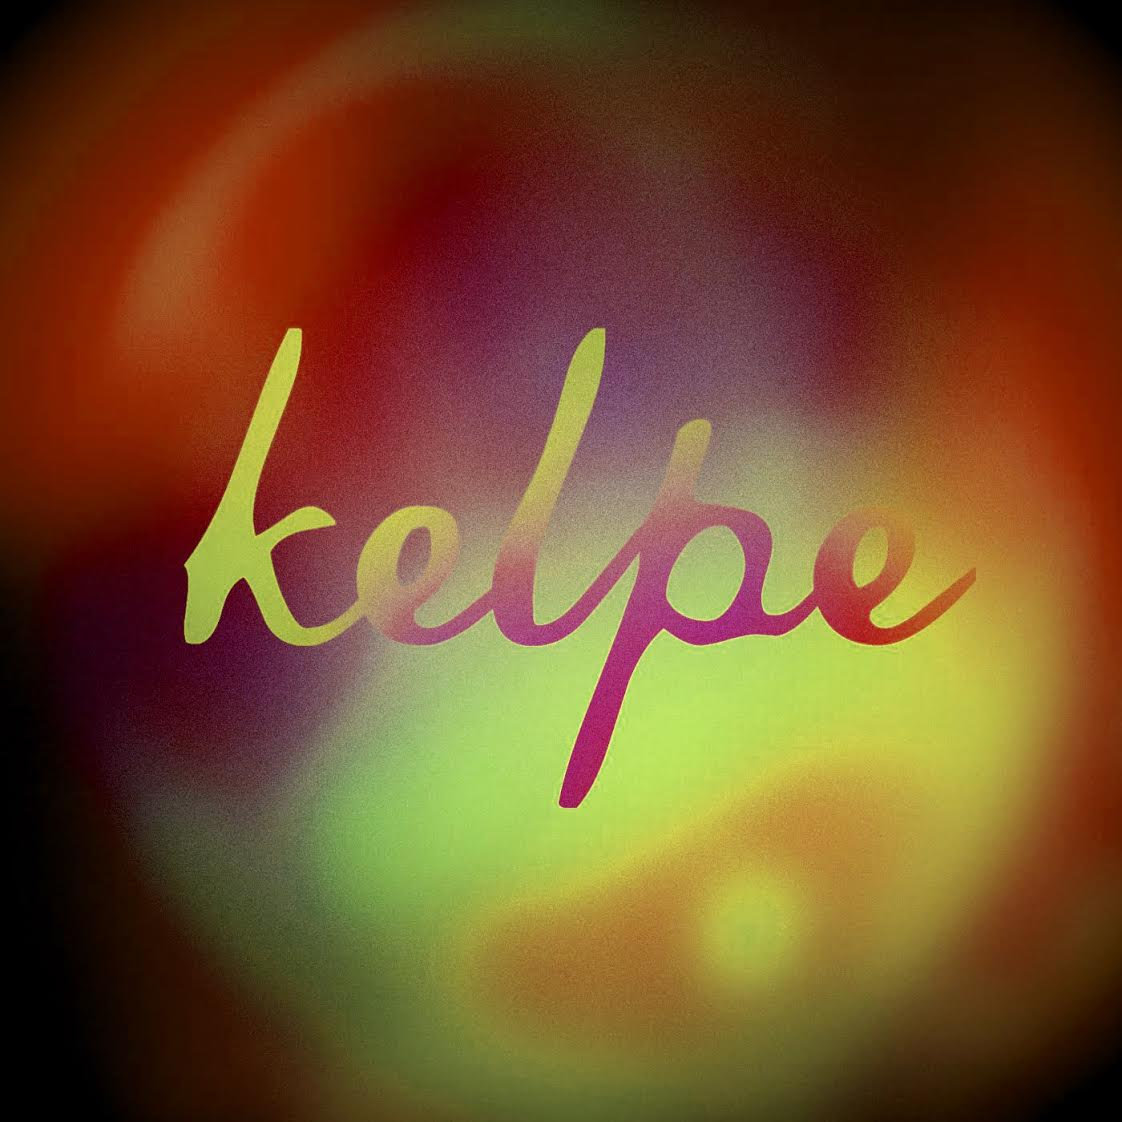 Kelpe - Rolly Devore / Hekla Prays @ 'Rolly Devore / Hekla Prays' album (alternative, london)